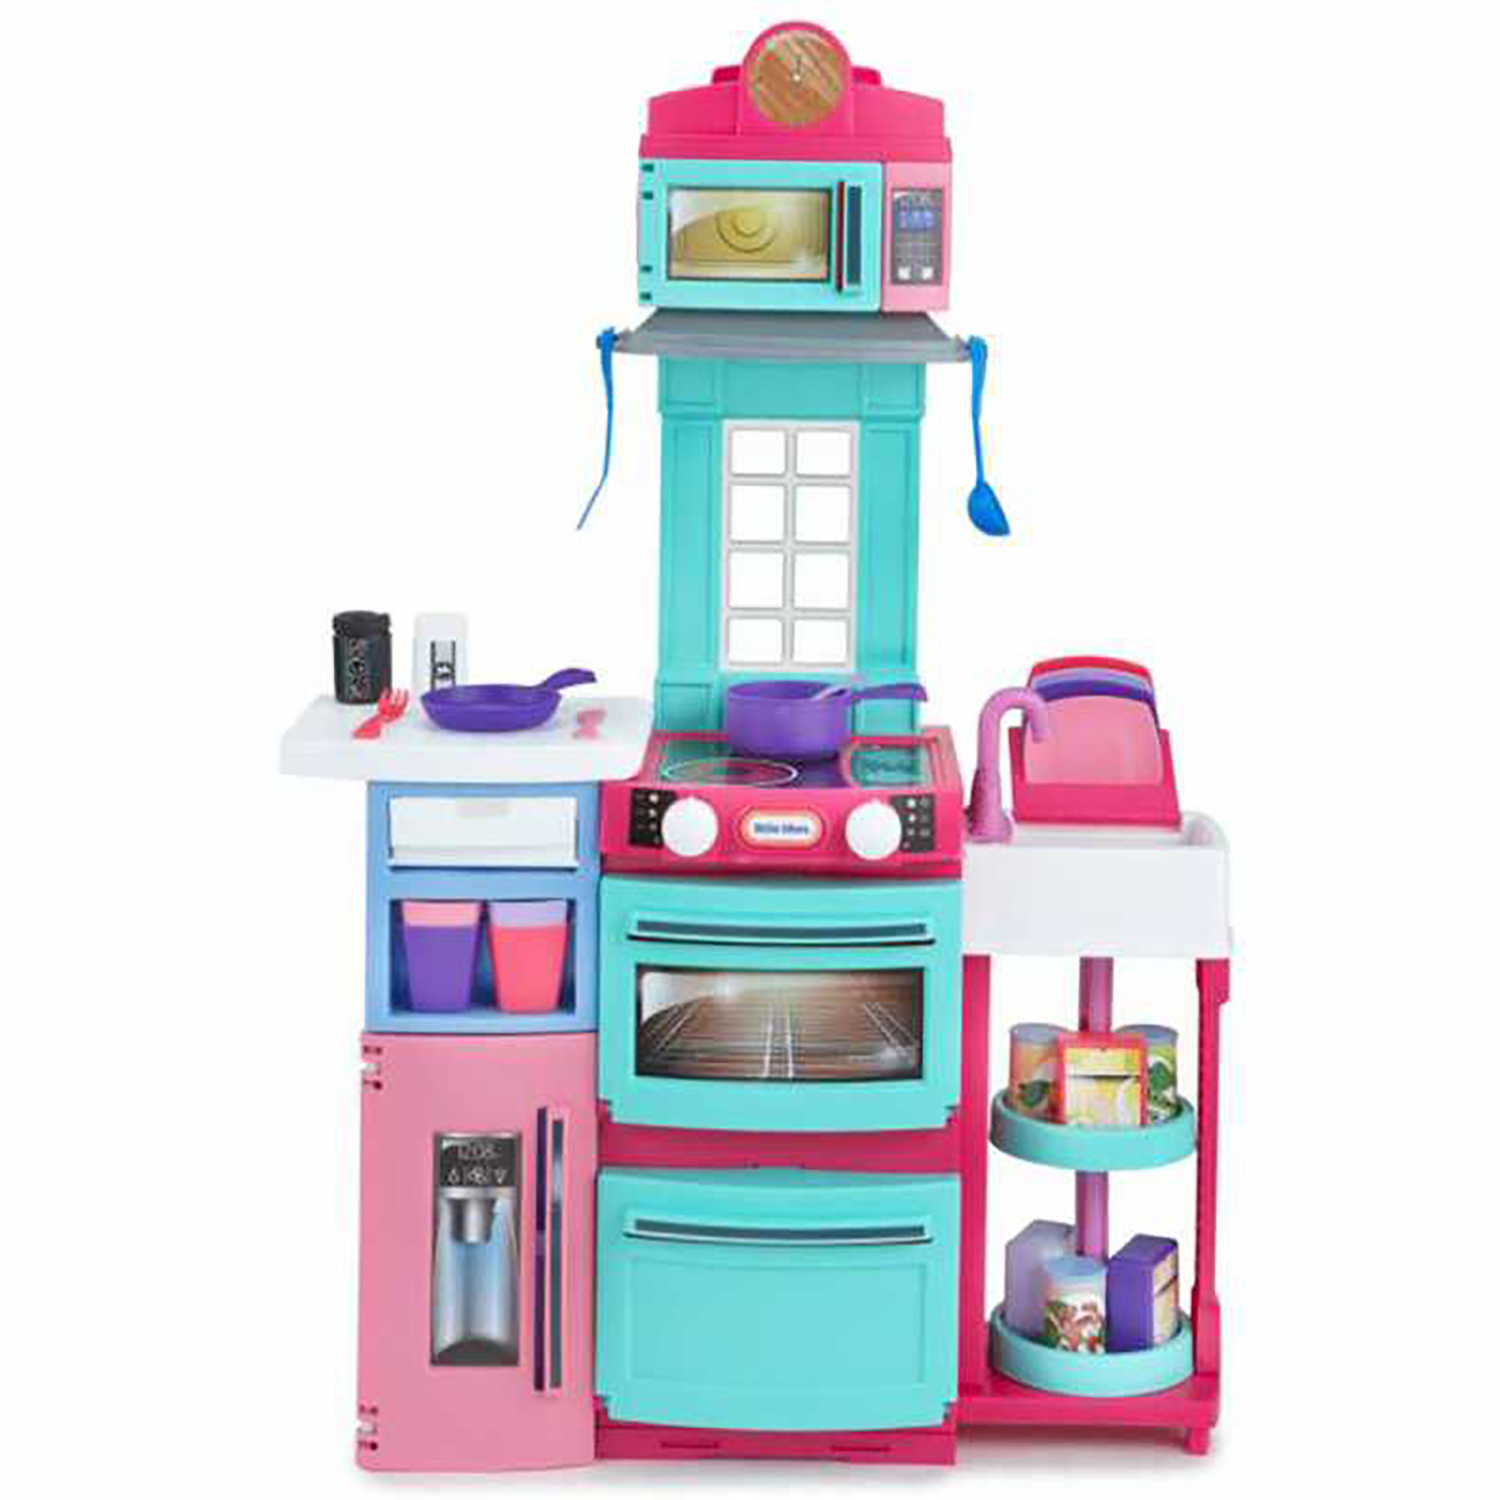 Little Tikes Cook \'n Store Kitchen Pretend Play Cooking Toy Set for ...